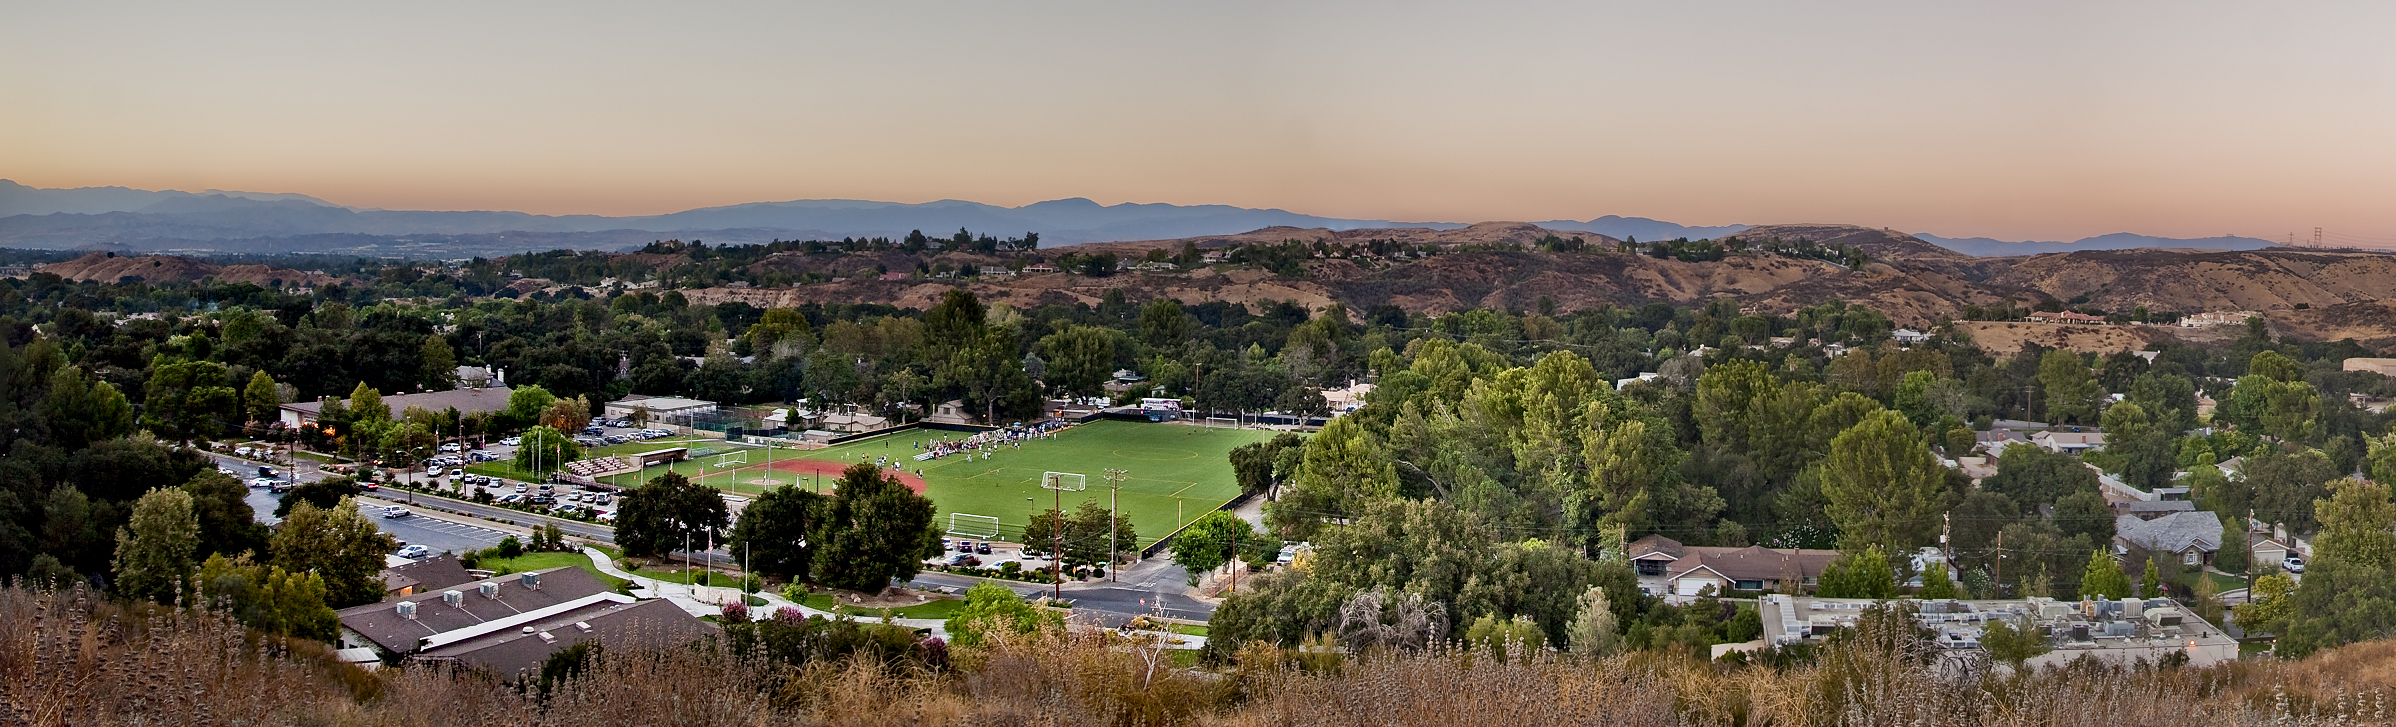 The Master's College and Seminary Photo - Nestled in a quiet and safe canyon in the city of Santa Clarita, The Master's College is a wonderful place to live and study. Because of our unique location, you're rarely more than an hour from all the fun of Southern California: beaches; mountains; theme parks; and of course, Hollywood!